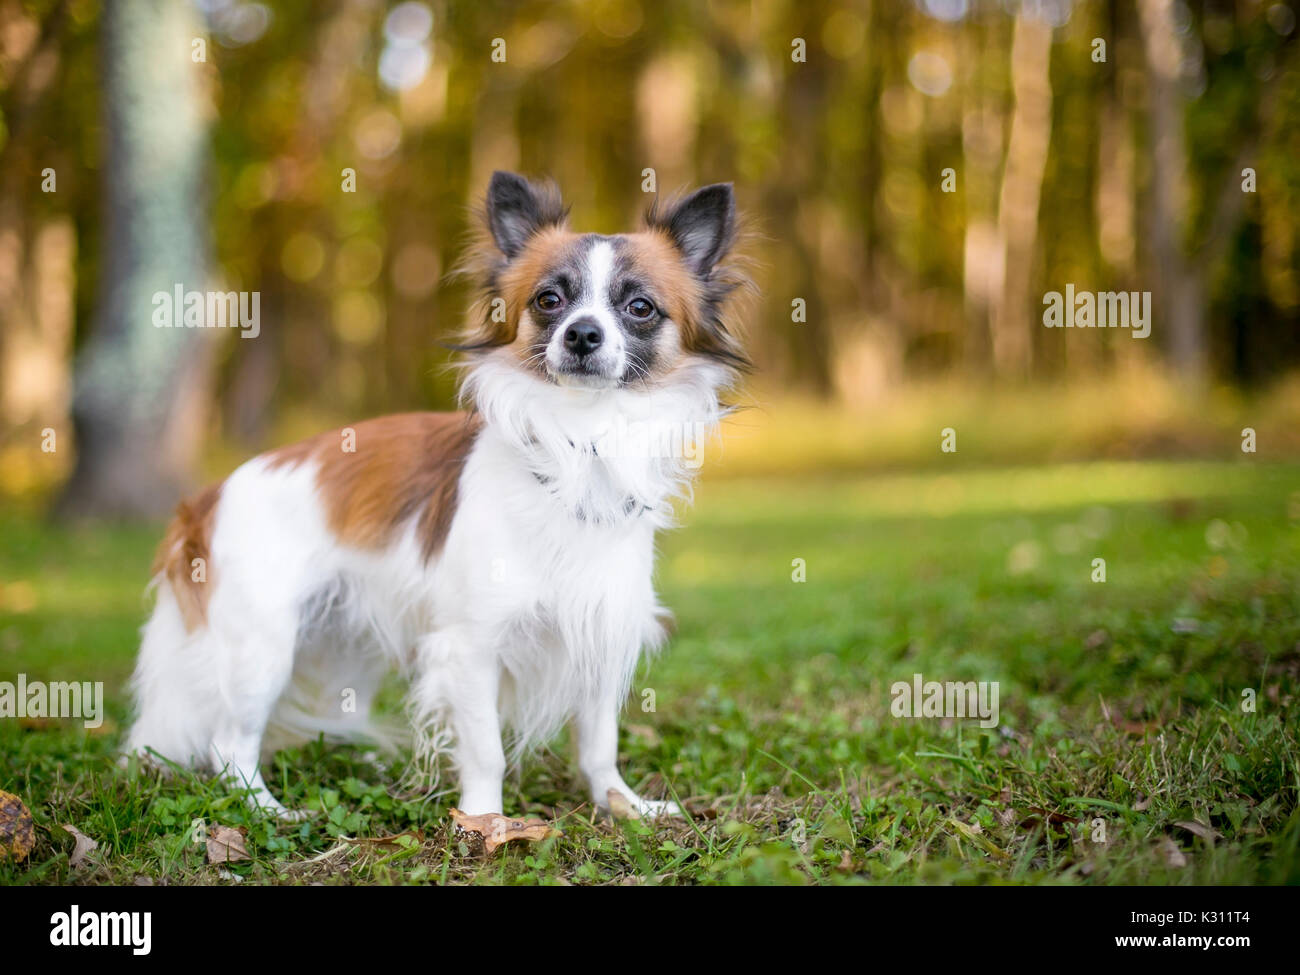 Long Haired Chihuahua High Resolution Stock Photography And Images Alamy